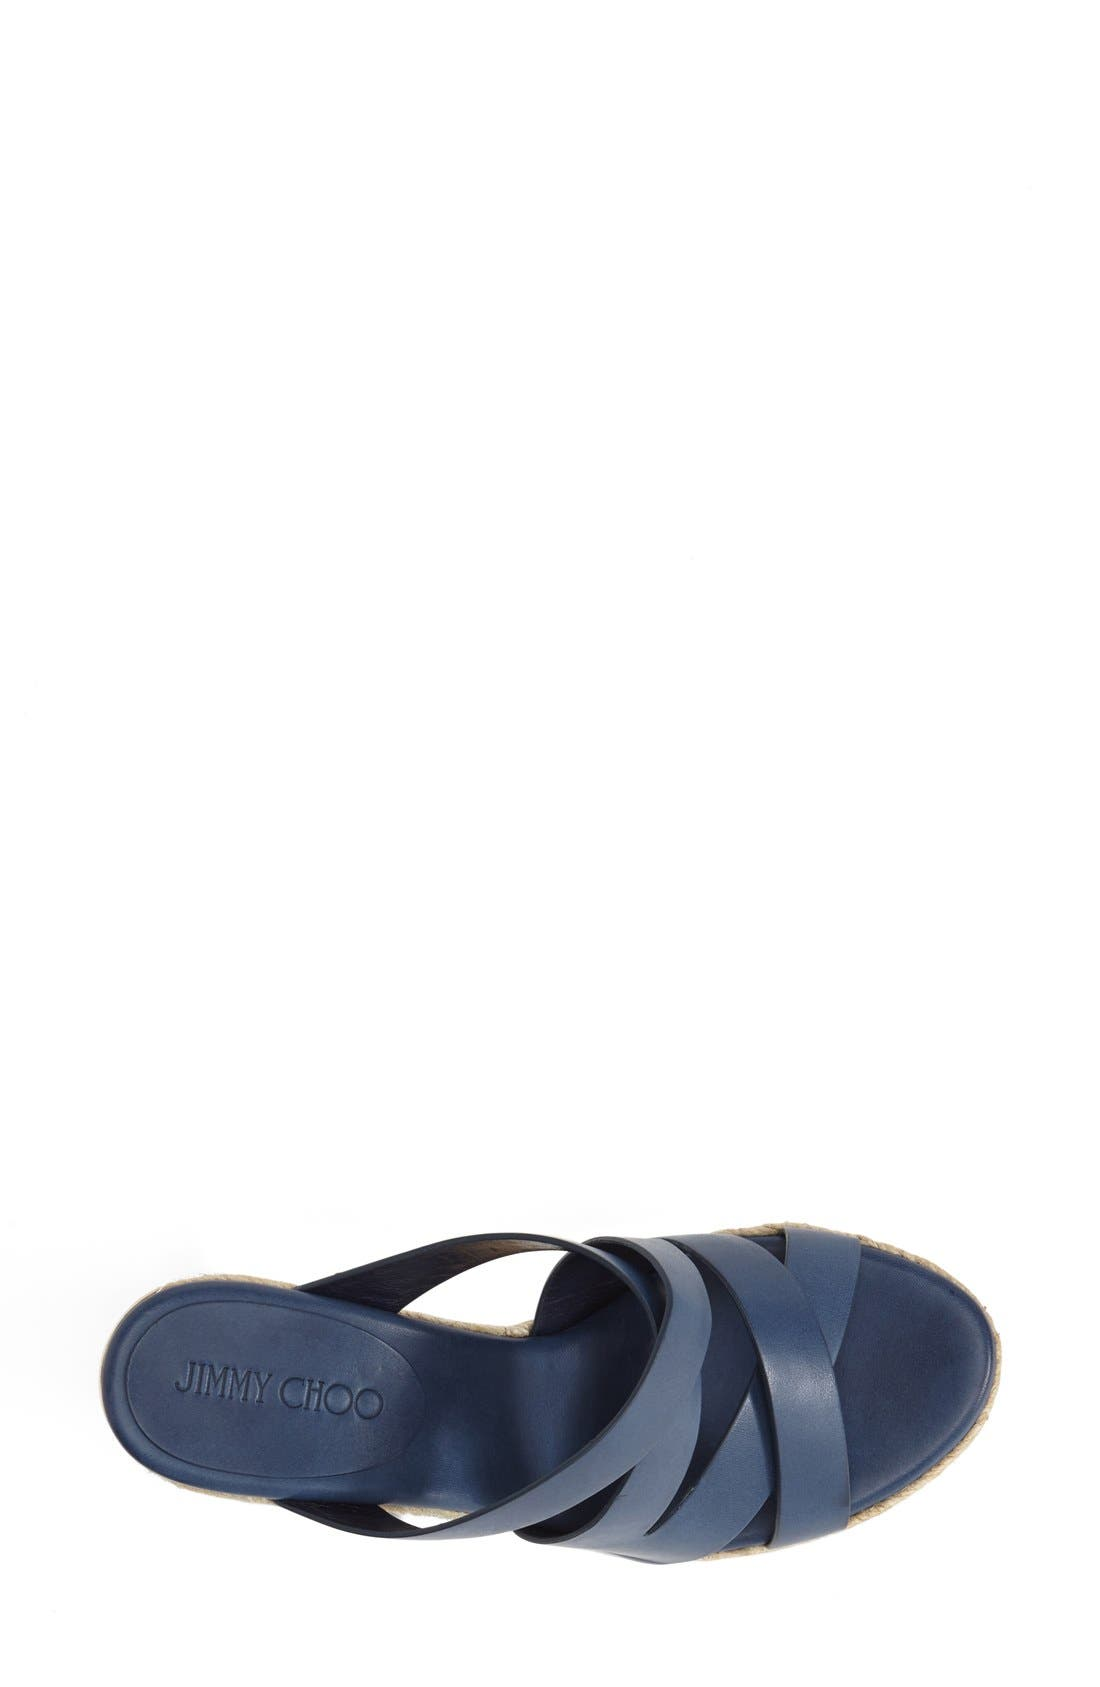 'Prisma' Leather Wedge Sandal,                             Alternate thumbnail 3, color,                             Navy